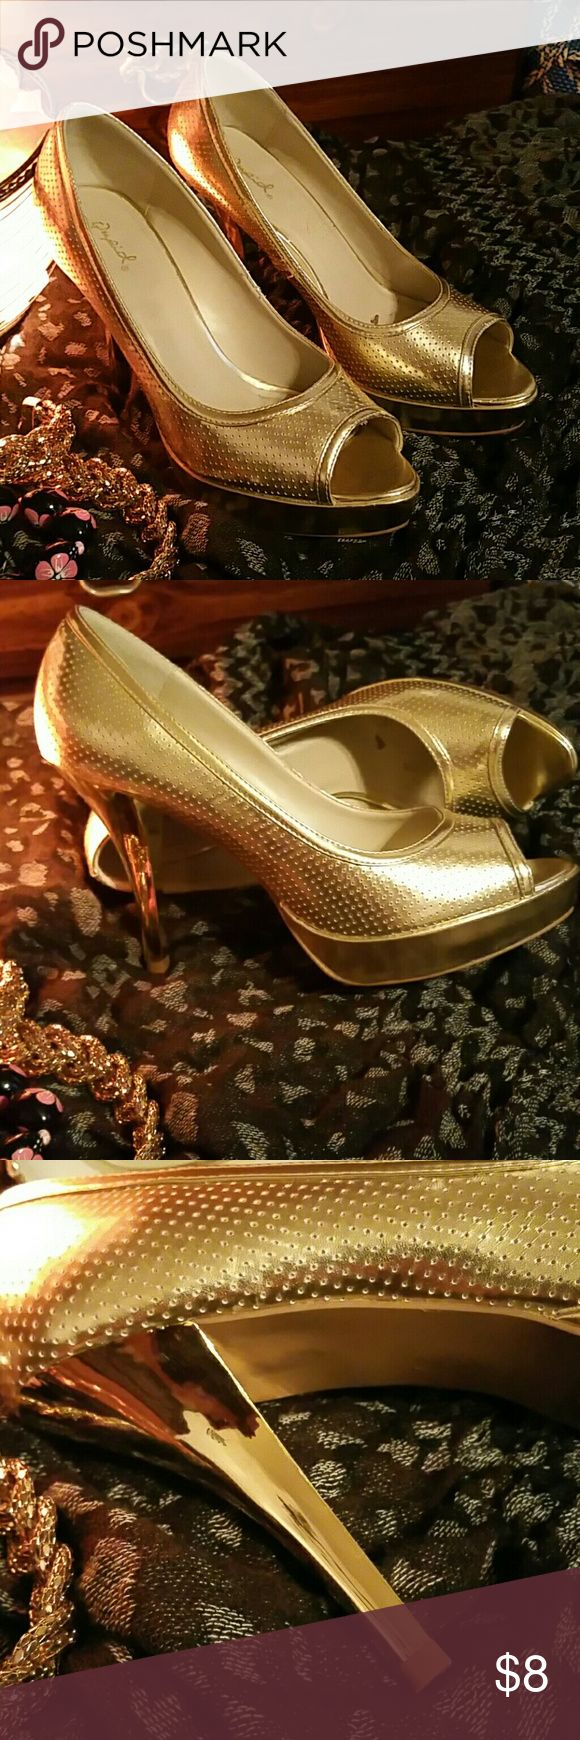 "Gold open toe heels. Simply beautiful, elegant gold metalic heels ,Great conditions! Just worn once,look divine  with skinny jeans! Size 10. 4""  heel, 1"" platform! Really comfy. Qupid Shoes Heels"